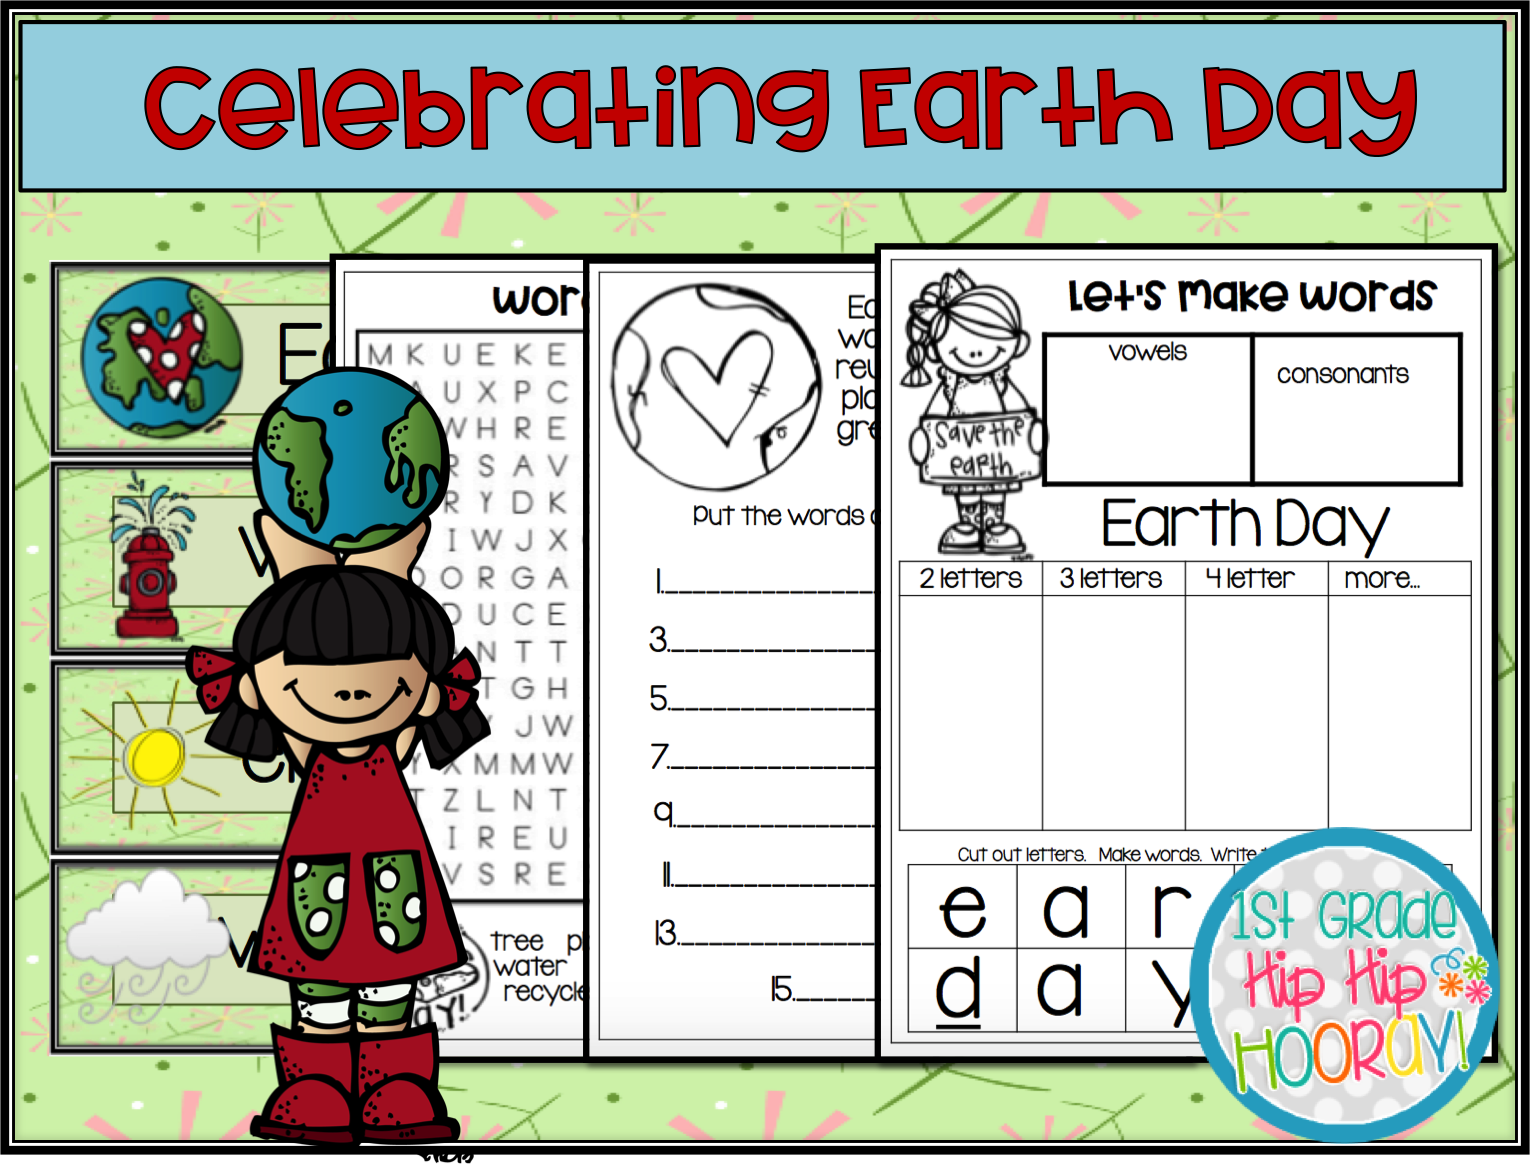 1st Grade Hip Hip Hooray Earth Day